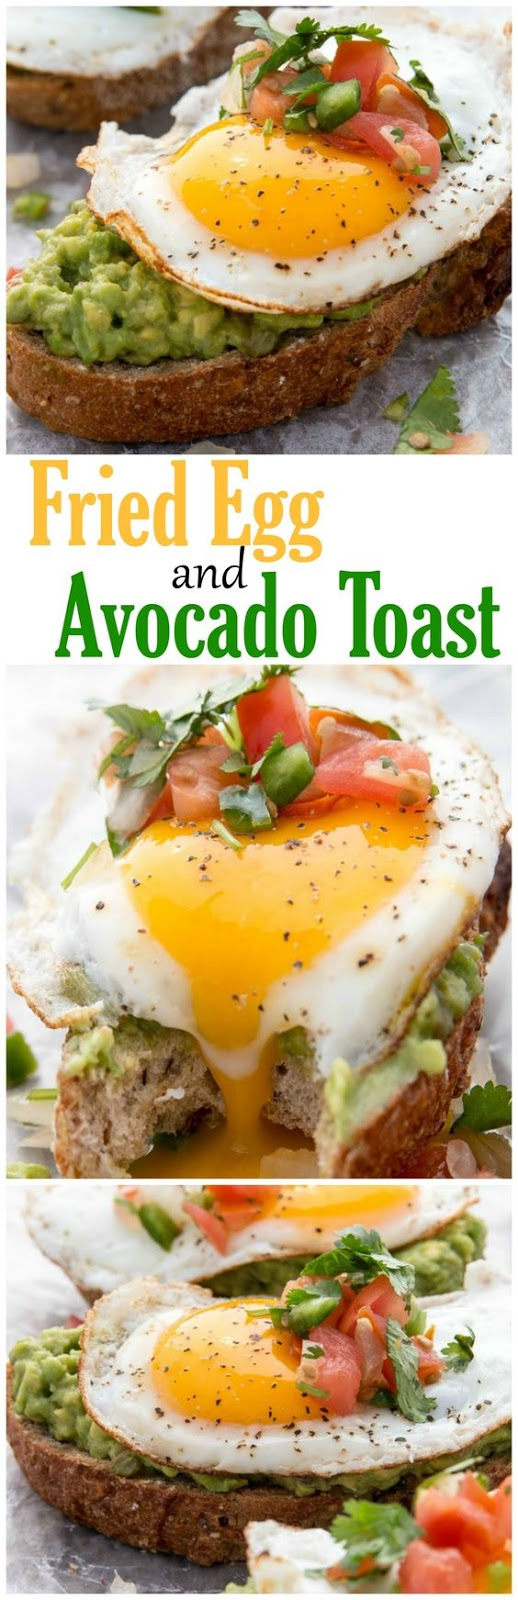 ★★★★☆ 7561 ratings | Fried Egg and Avocado Toast #HEALTHYFOOD #EASYRECIPES #DINNER #LAUCH #DELICIOUS #EASY #HOLIDAYS #RECIPE #Fried #Egg #Avocado #Toast